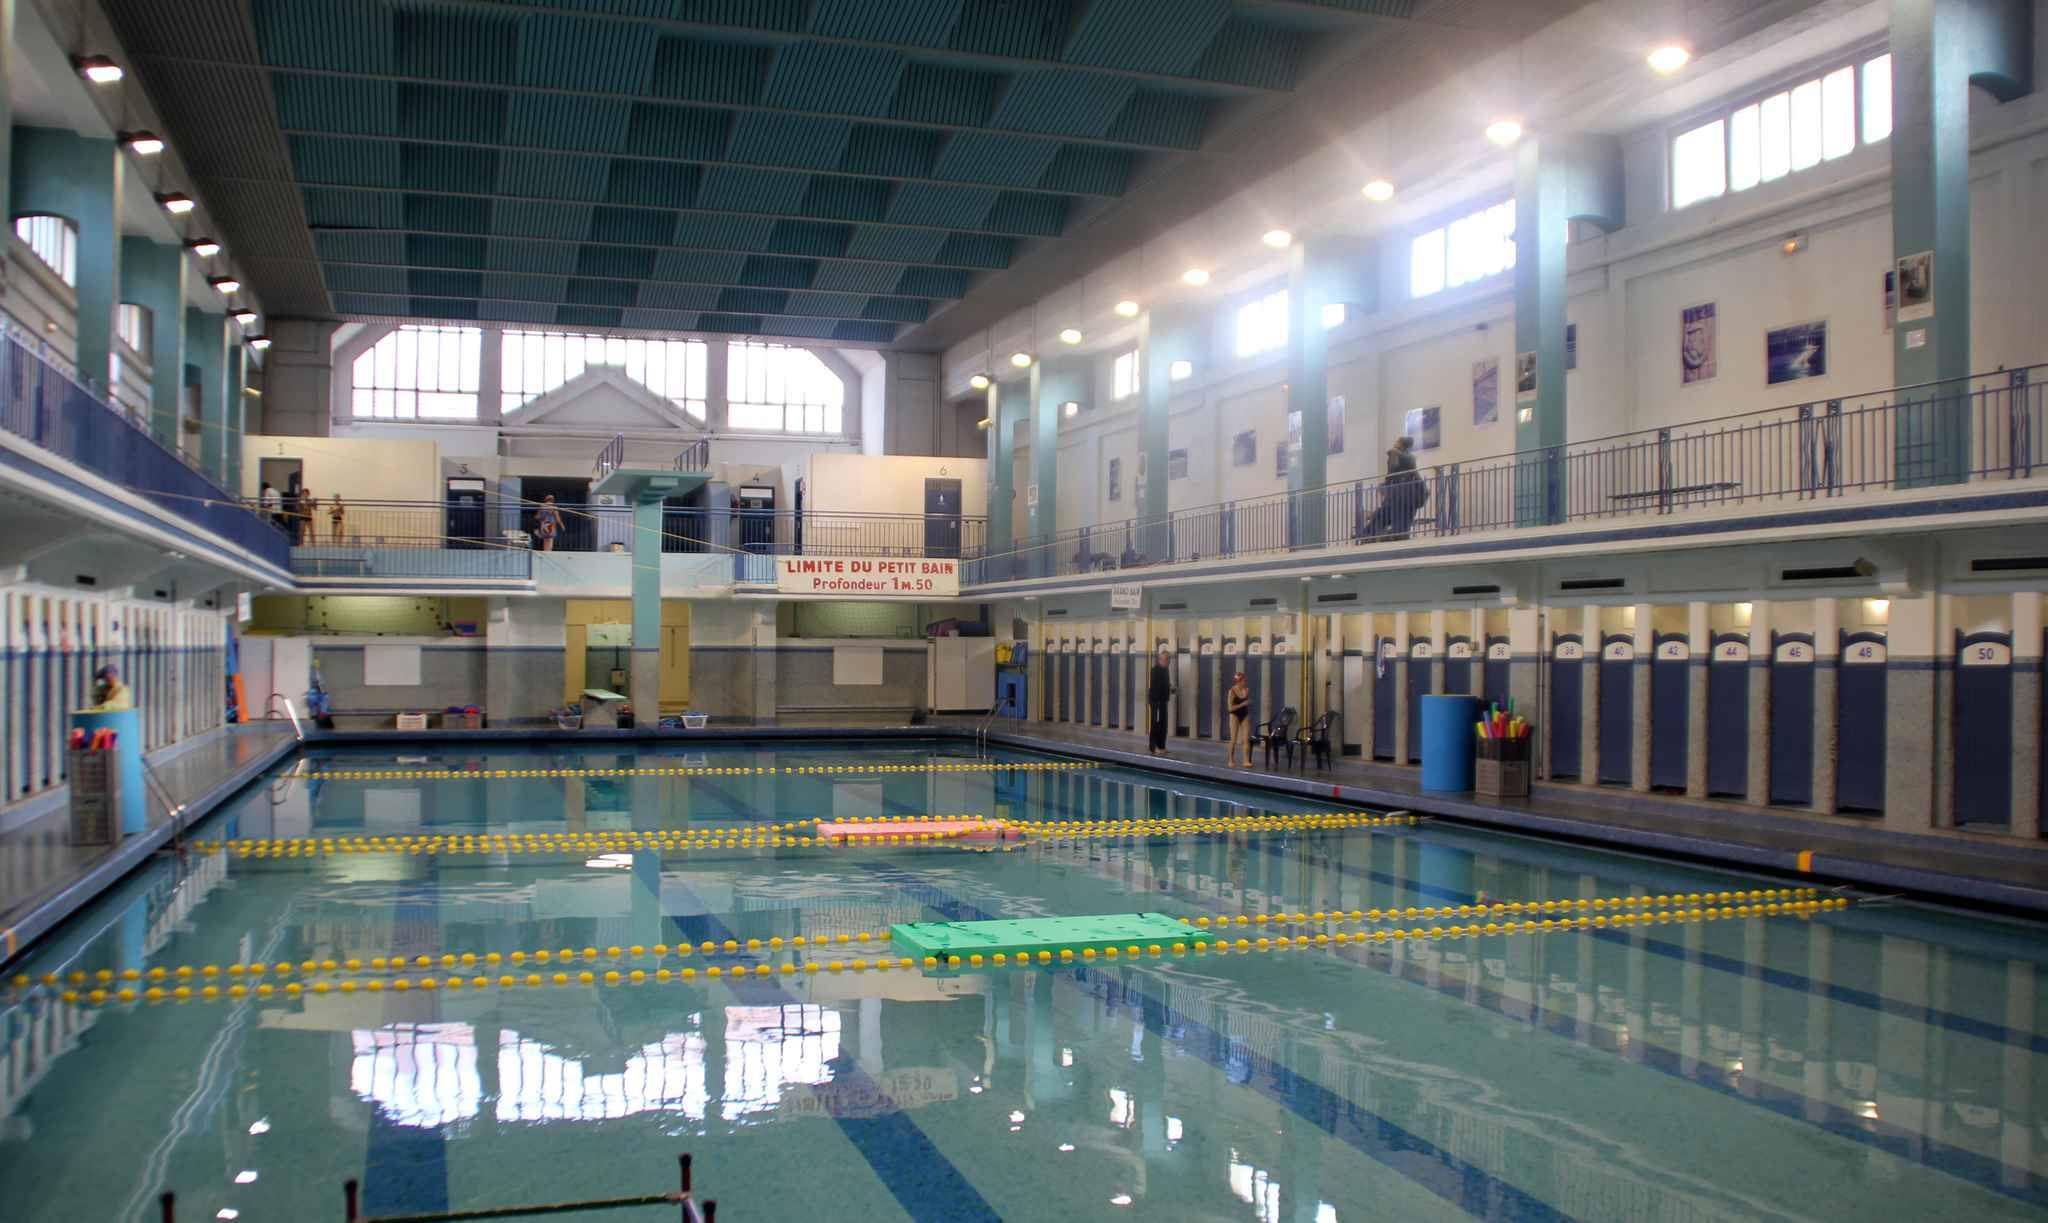 Rennes la piscine saint georges bient t class e aux for Piscine saintes